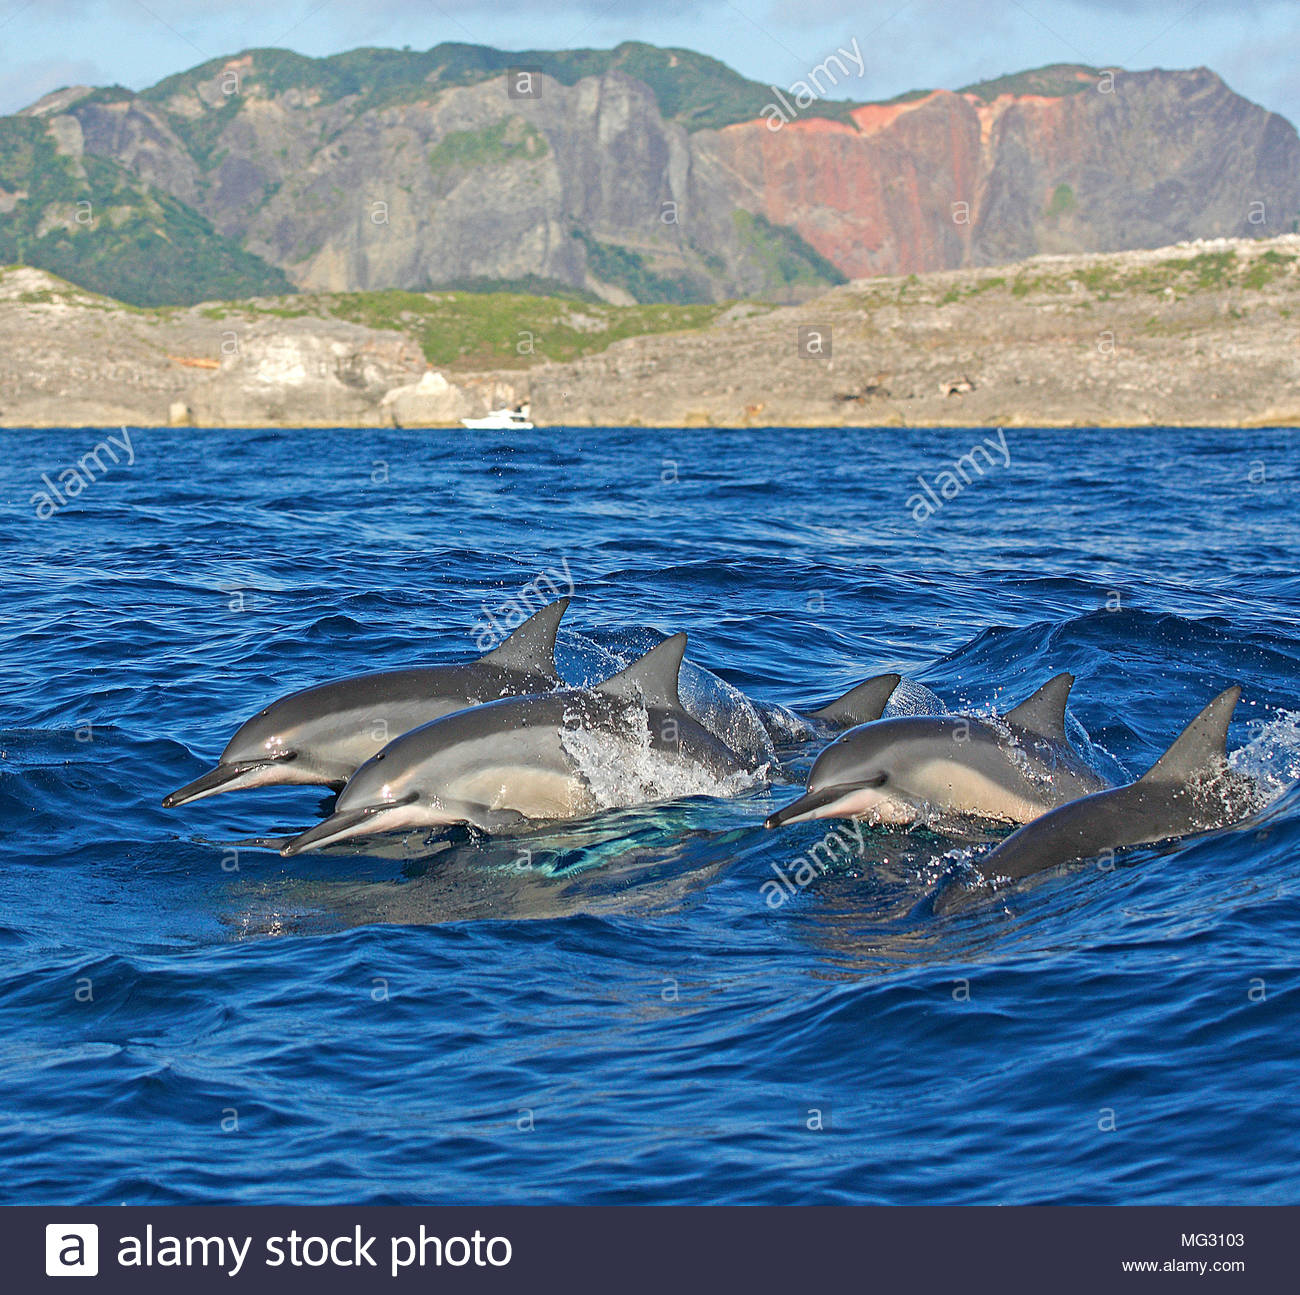 Spinner dolphin (Stenella longirostris) pod of dolphins at surface, Ogasawara Islands, Japan - Stock Image